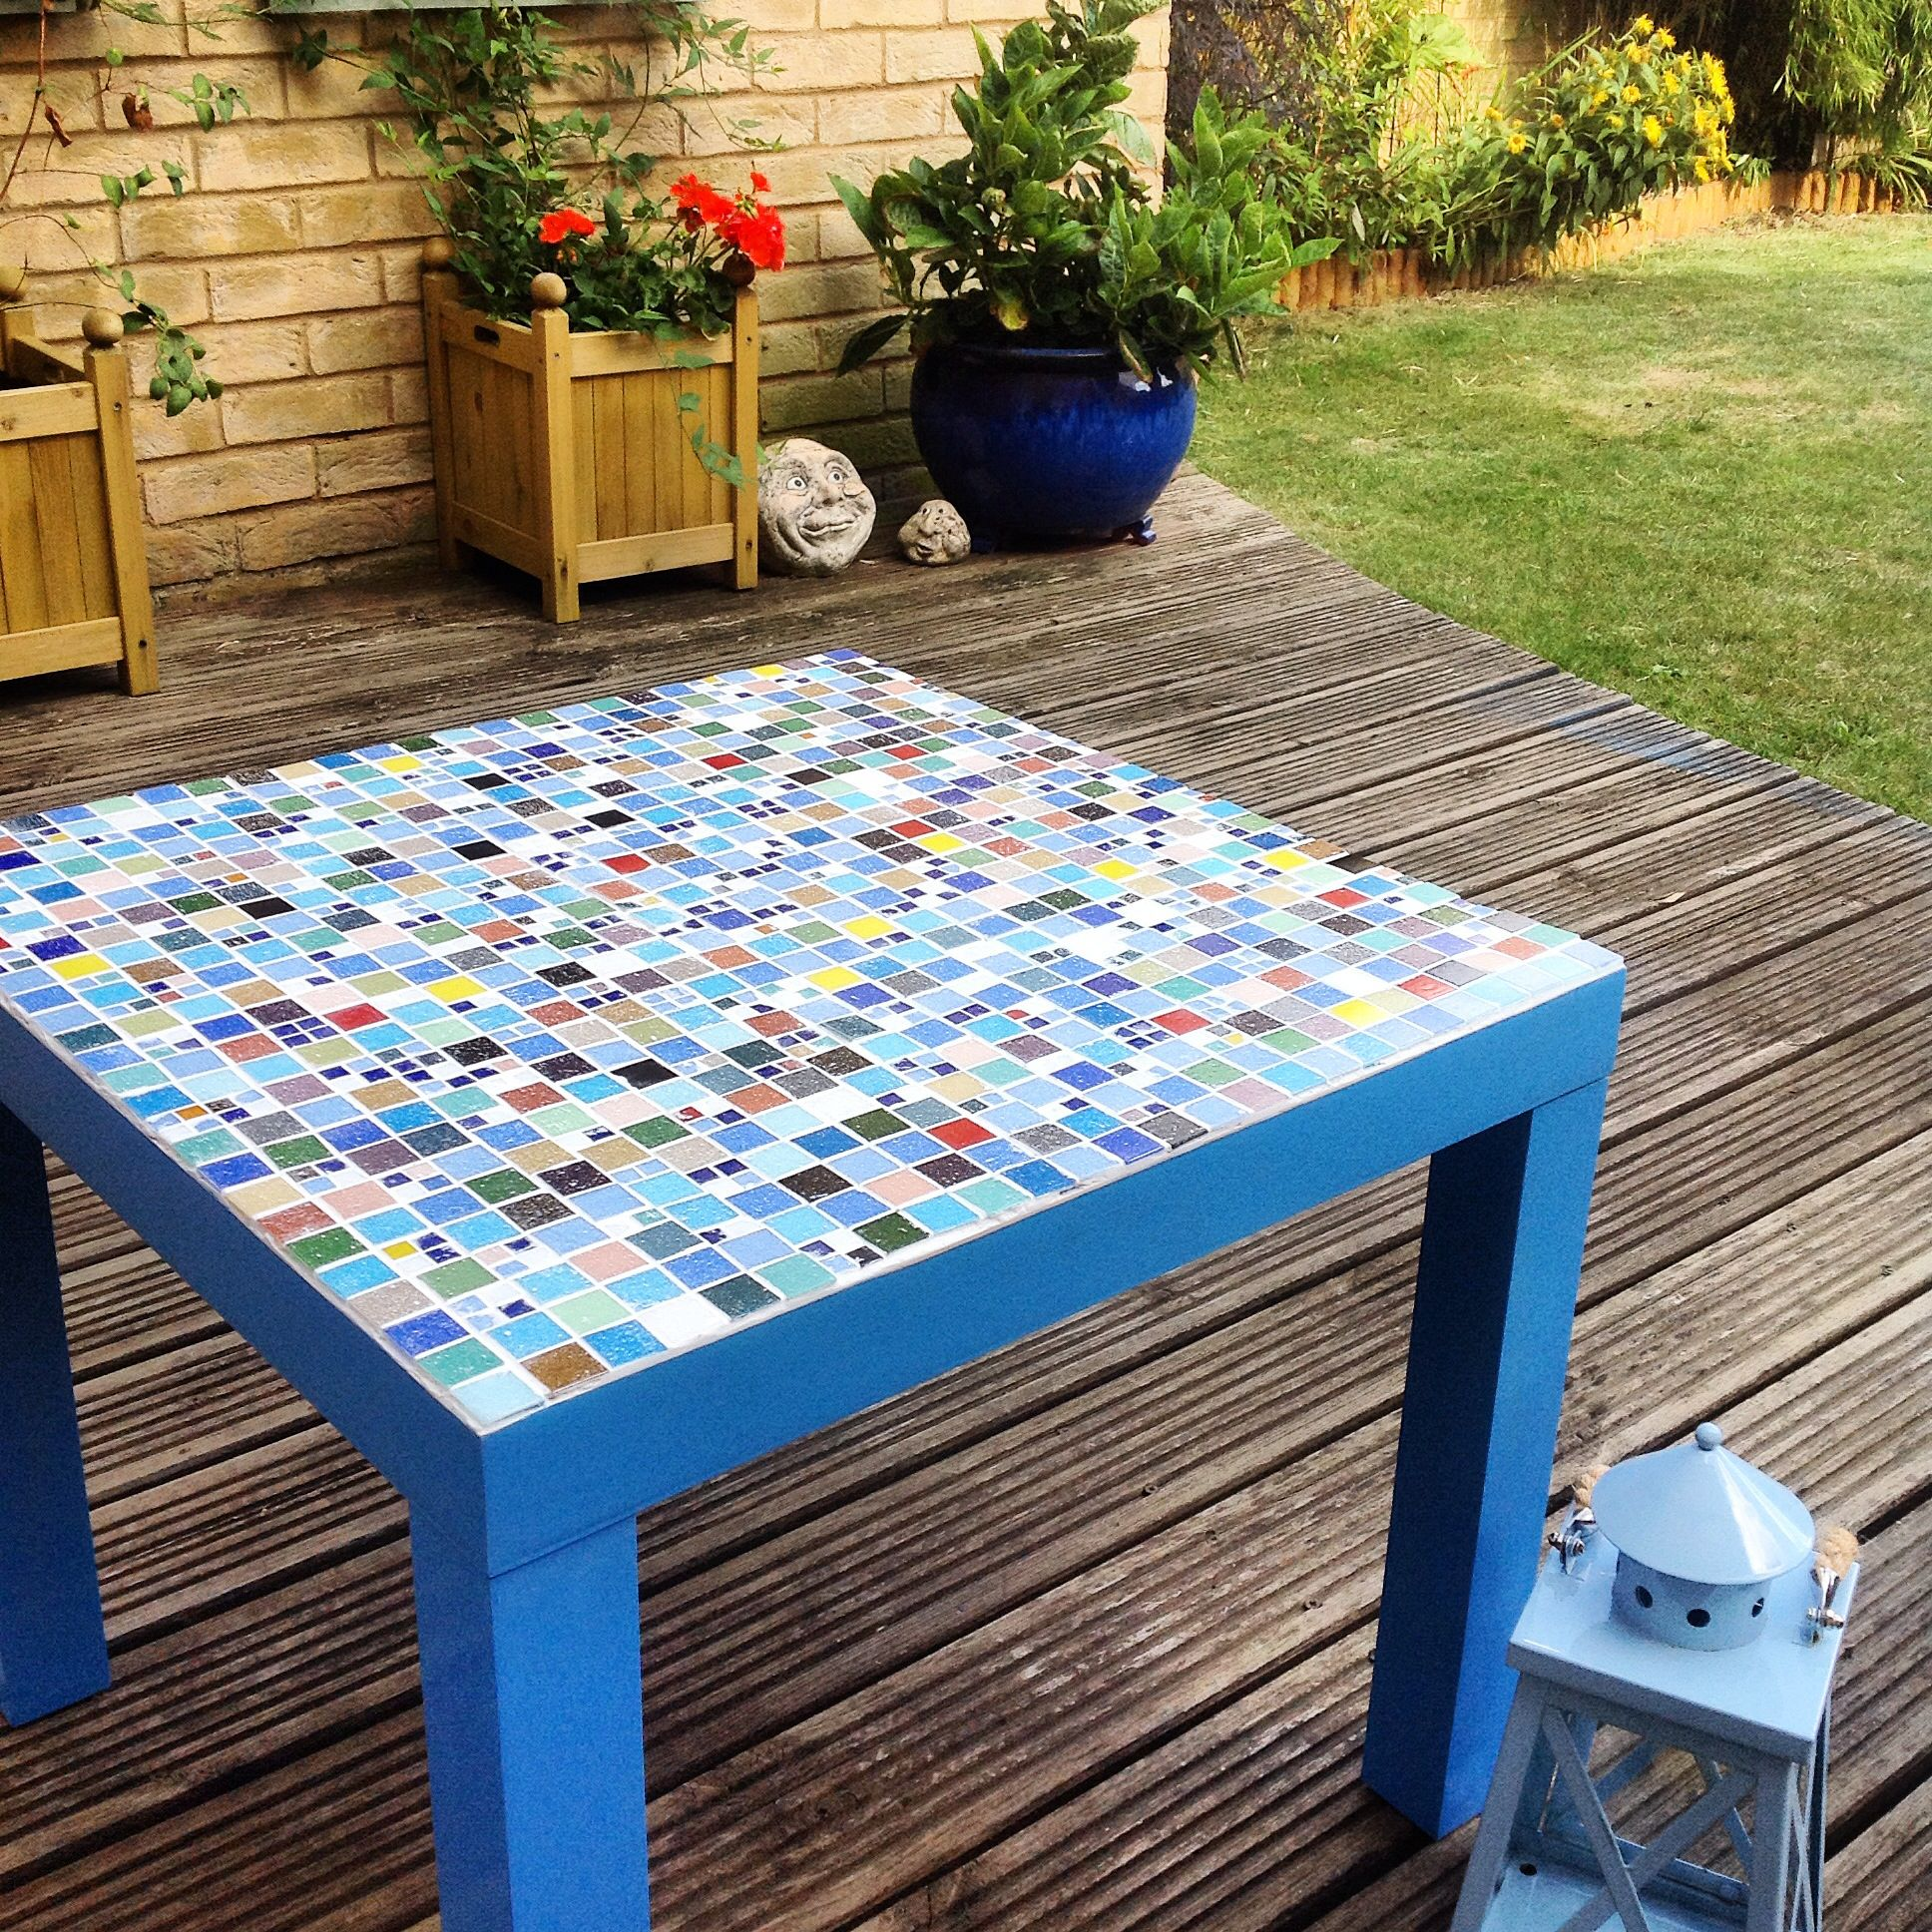 Mosaic Table Take One Old Ikea Lack Table Mosaic The Top And Then Spray Paint The Sides And Legs Voila A New Garden Ikea Lack Table Lack Table Mosaic Table [ 1936 x 1936 Pixel ]